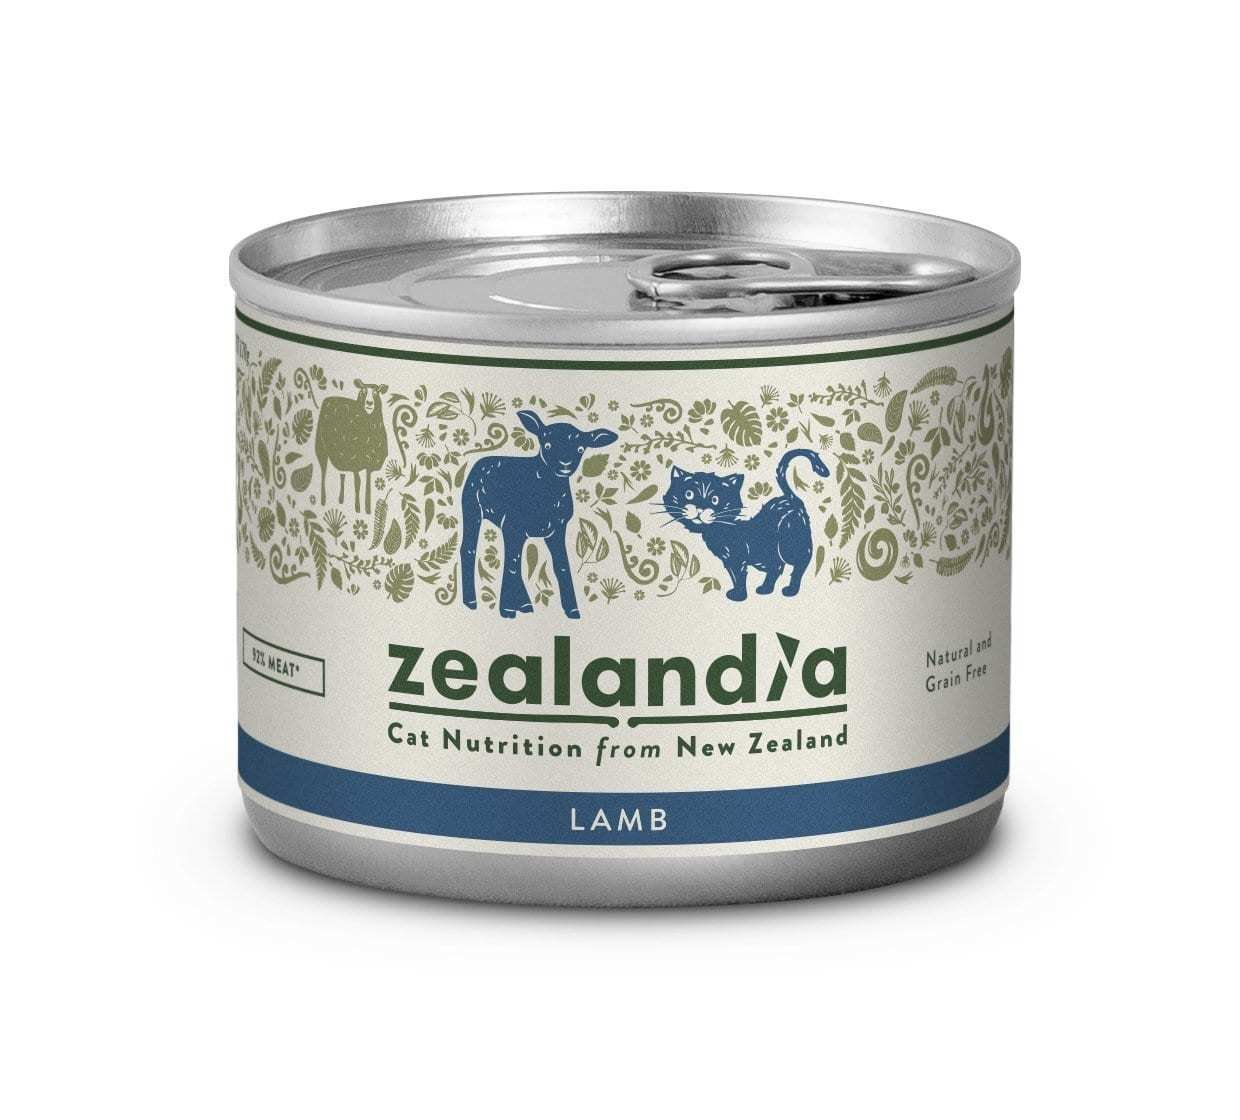 Free Range NZ Lamb 170g Tinned Cat Food Singles or 12 Pkt are on SALE zealandia-cat-free-range-nz-lamb-170g-tin